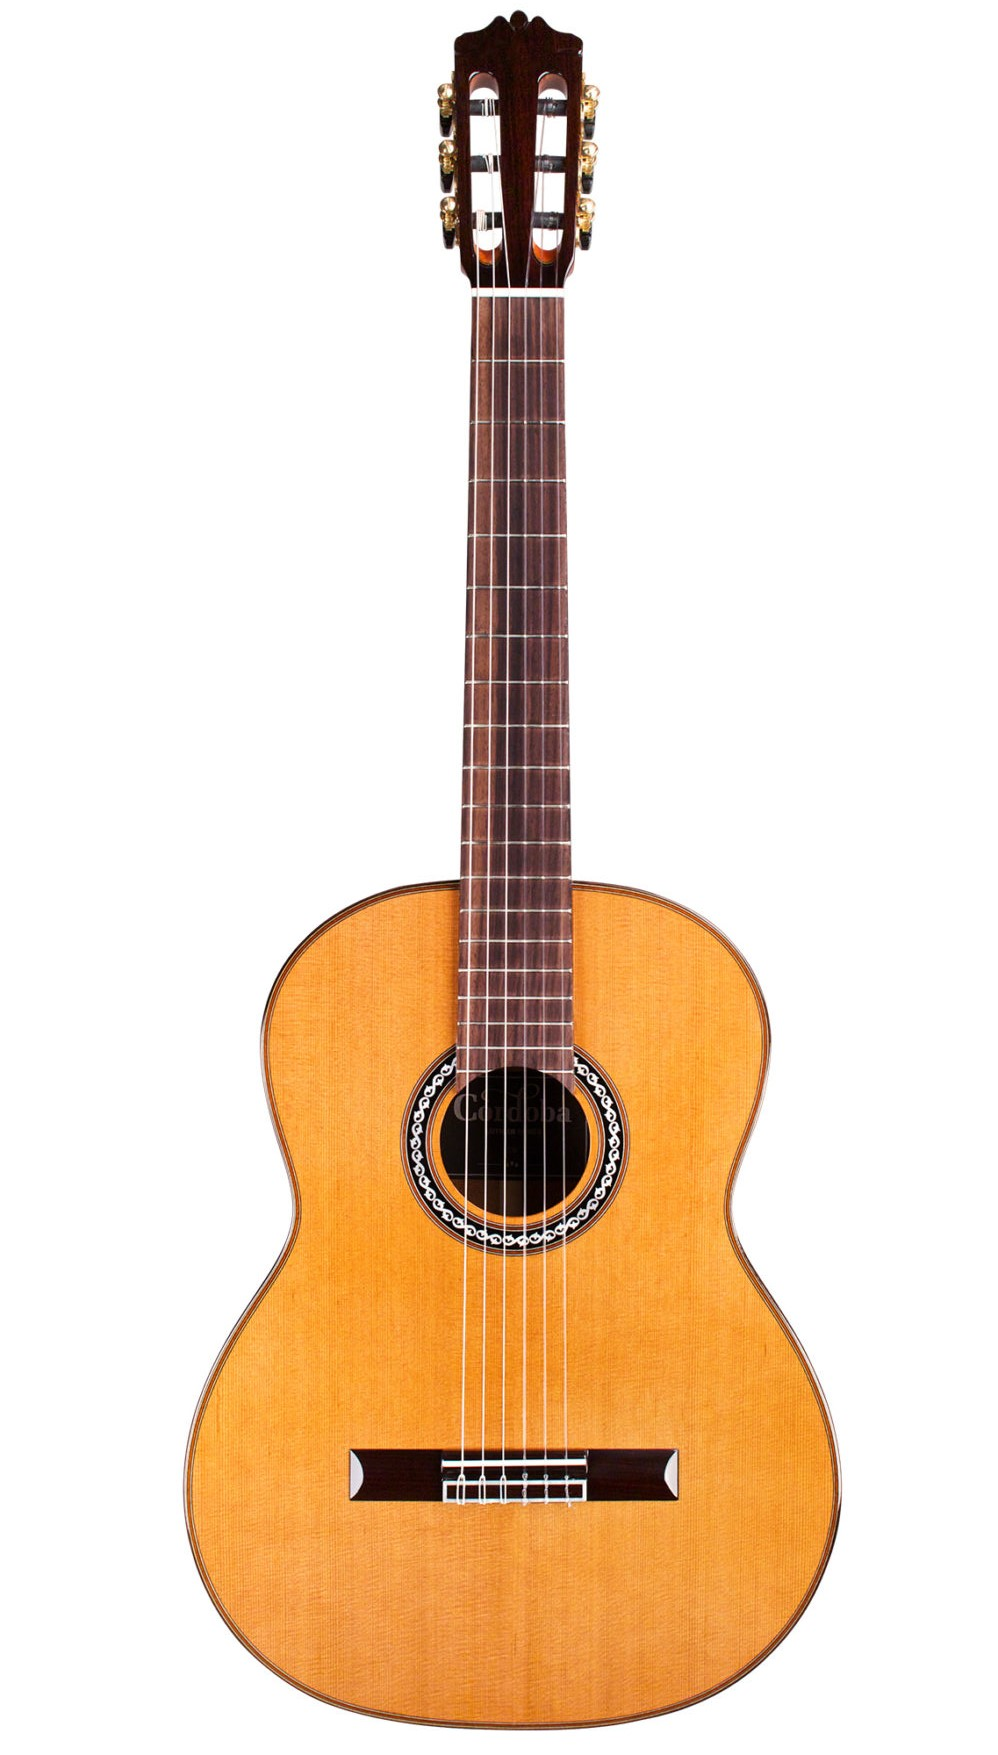 Cordoba C9 CD Classical Guitar Natural with Case